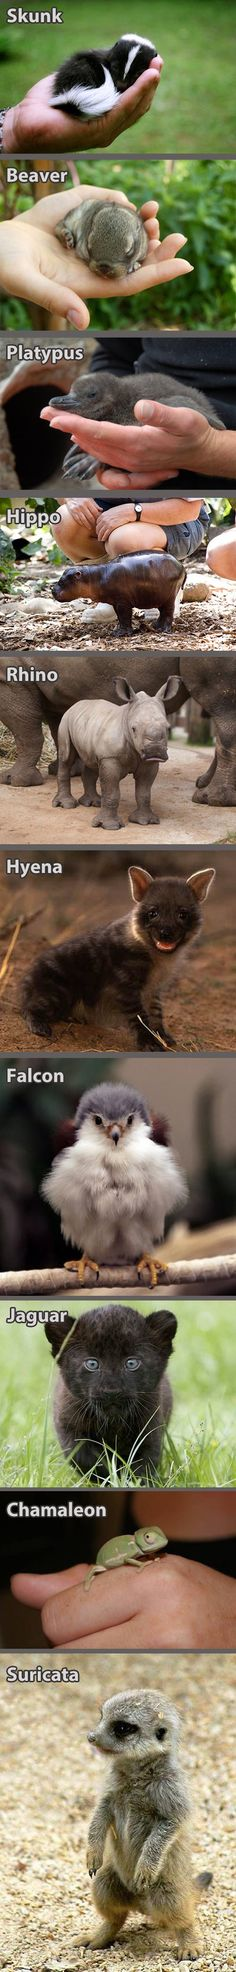 Cuteness Overload | Webfail - Fail Pictures and Fail Videos